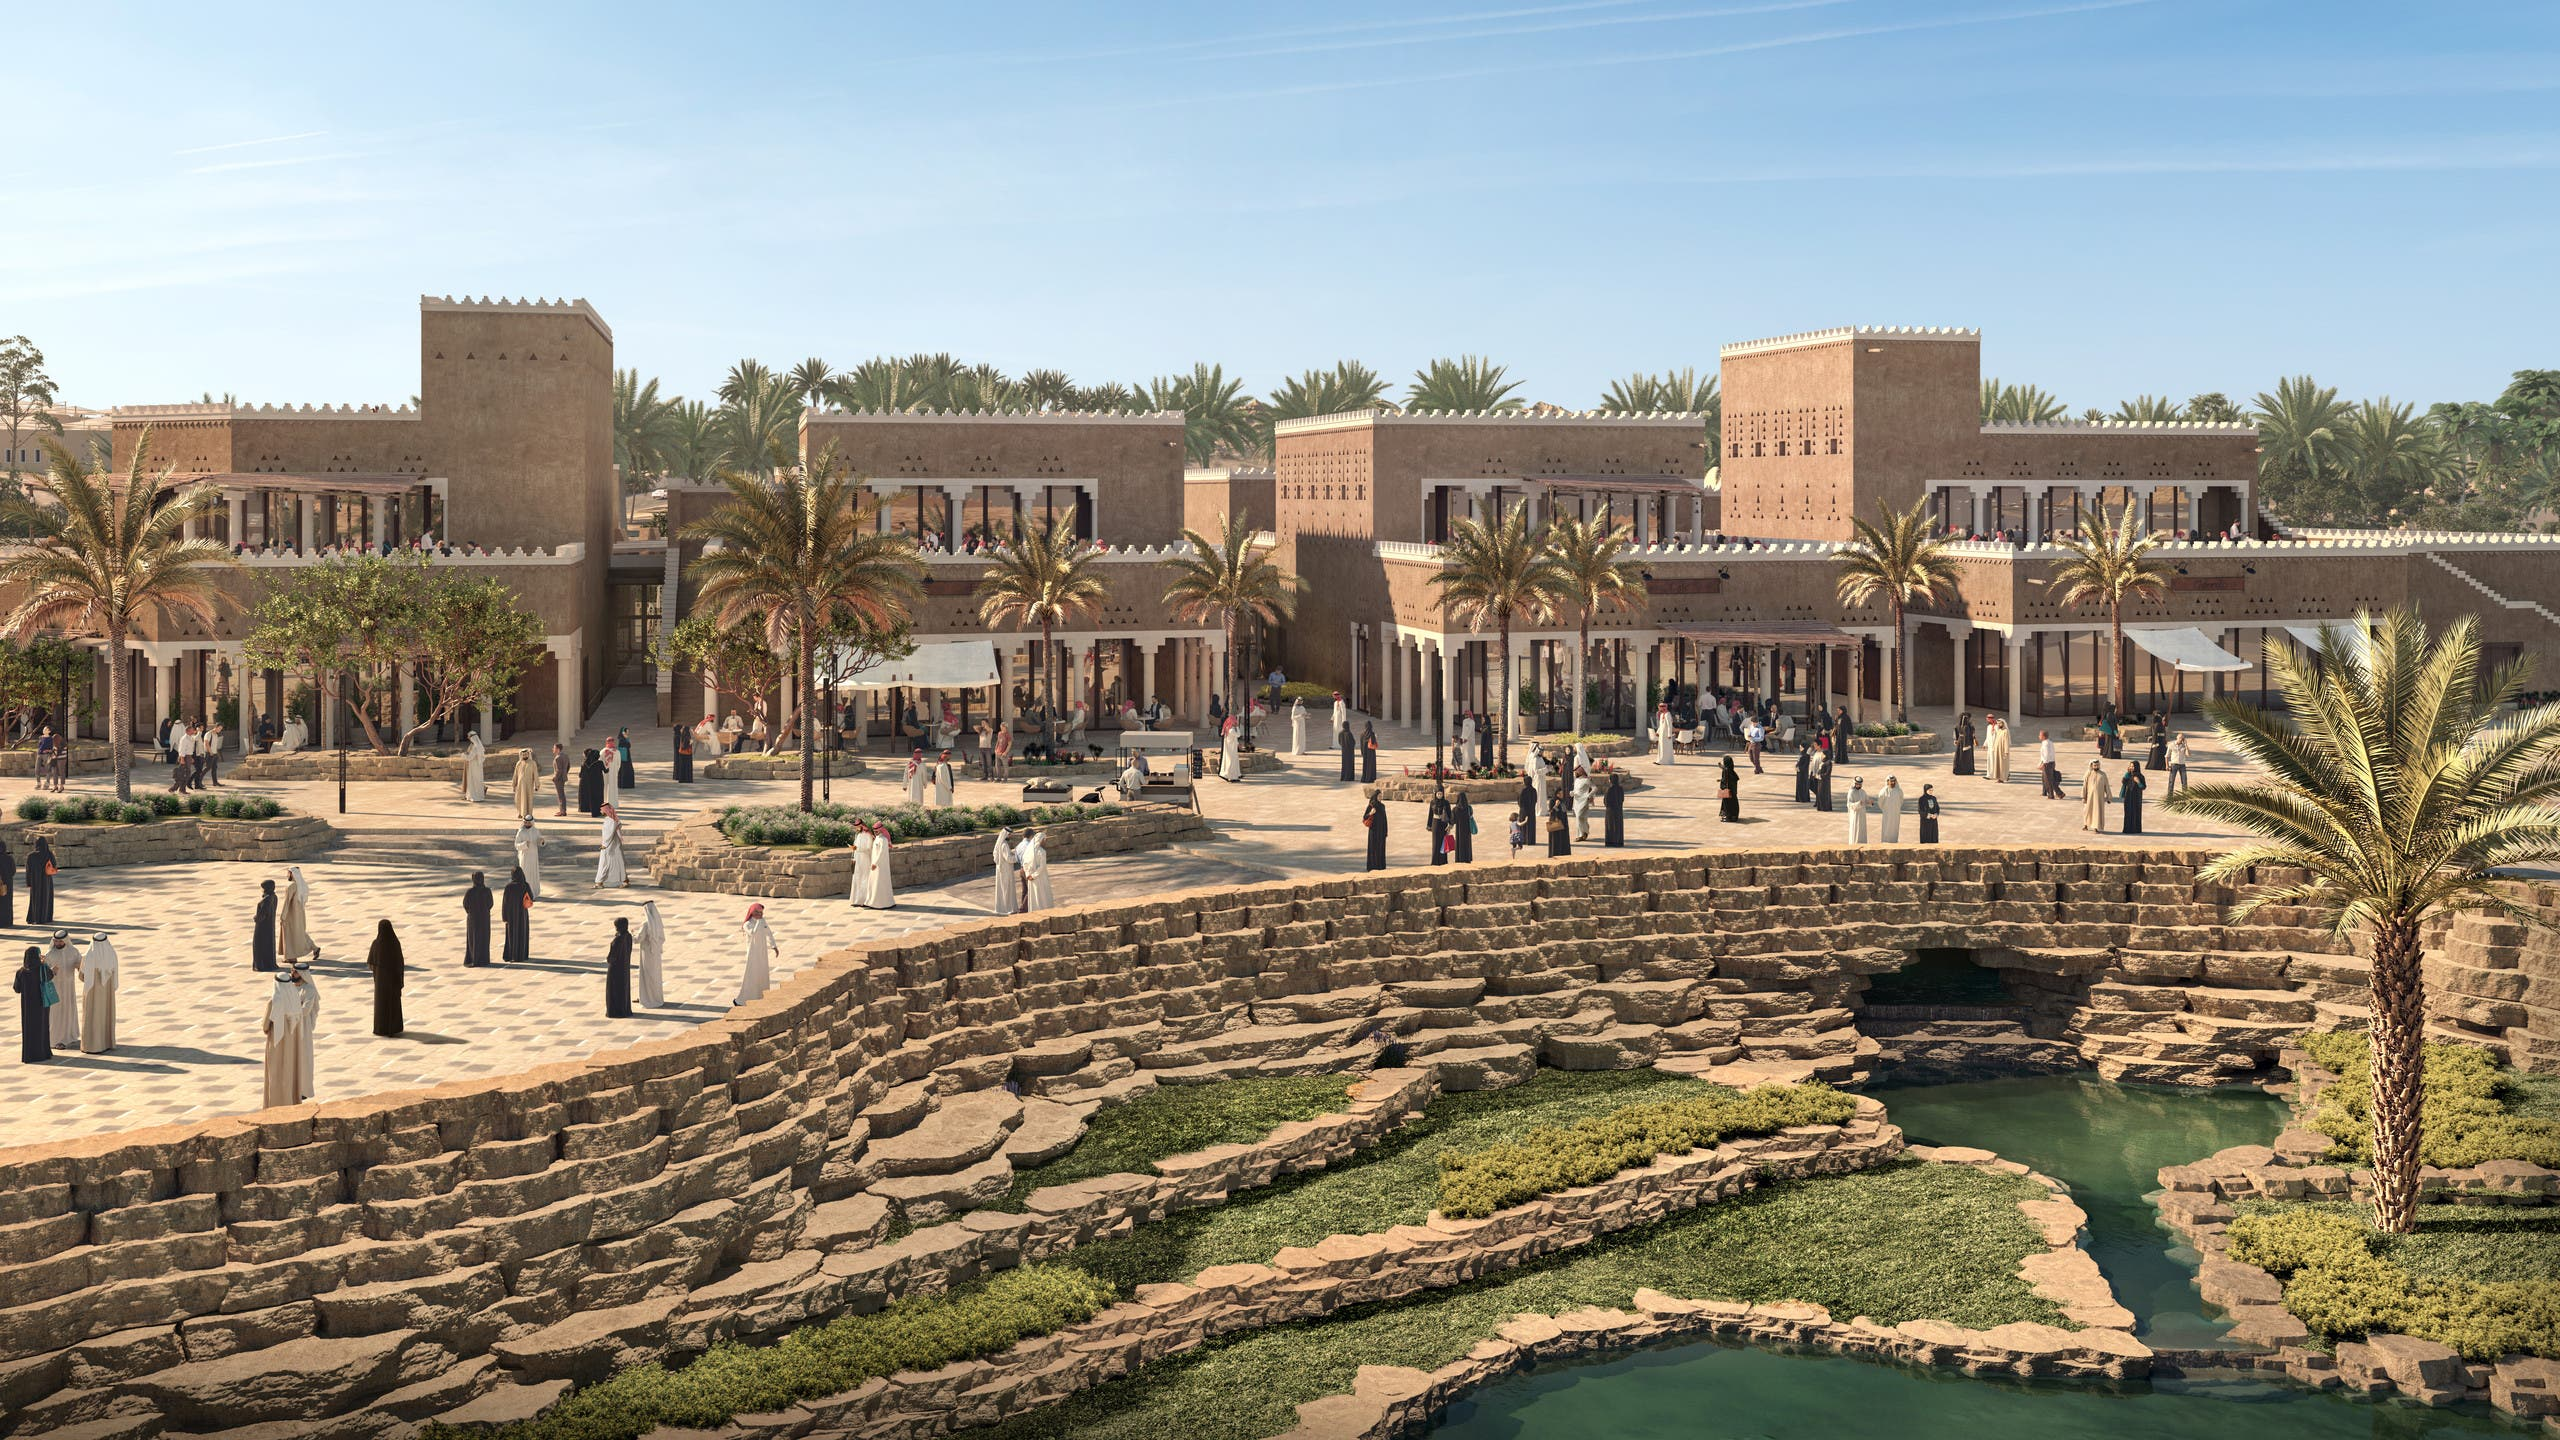 The Al Bujairi District will be the first major part of the huge al-Diriyah Gate development to be open to the public. An F&B precinct steeped in history, it will feature a street market, a gallery, plaza, an amphitheater, and the At-Turaif visitor center – the entry point for tourists embarking on an exploration of the UNESCO World Heritage Site which is also slated to open in 2021. (Supplied: al-Diriyah Gate Development Authority)